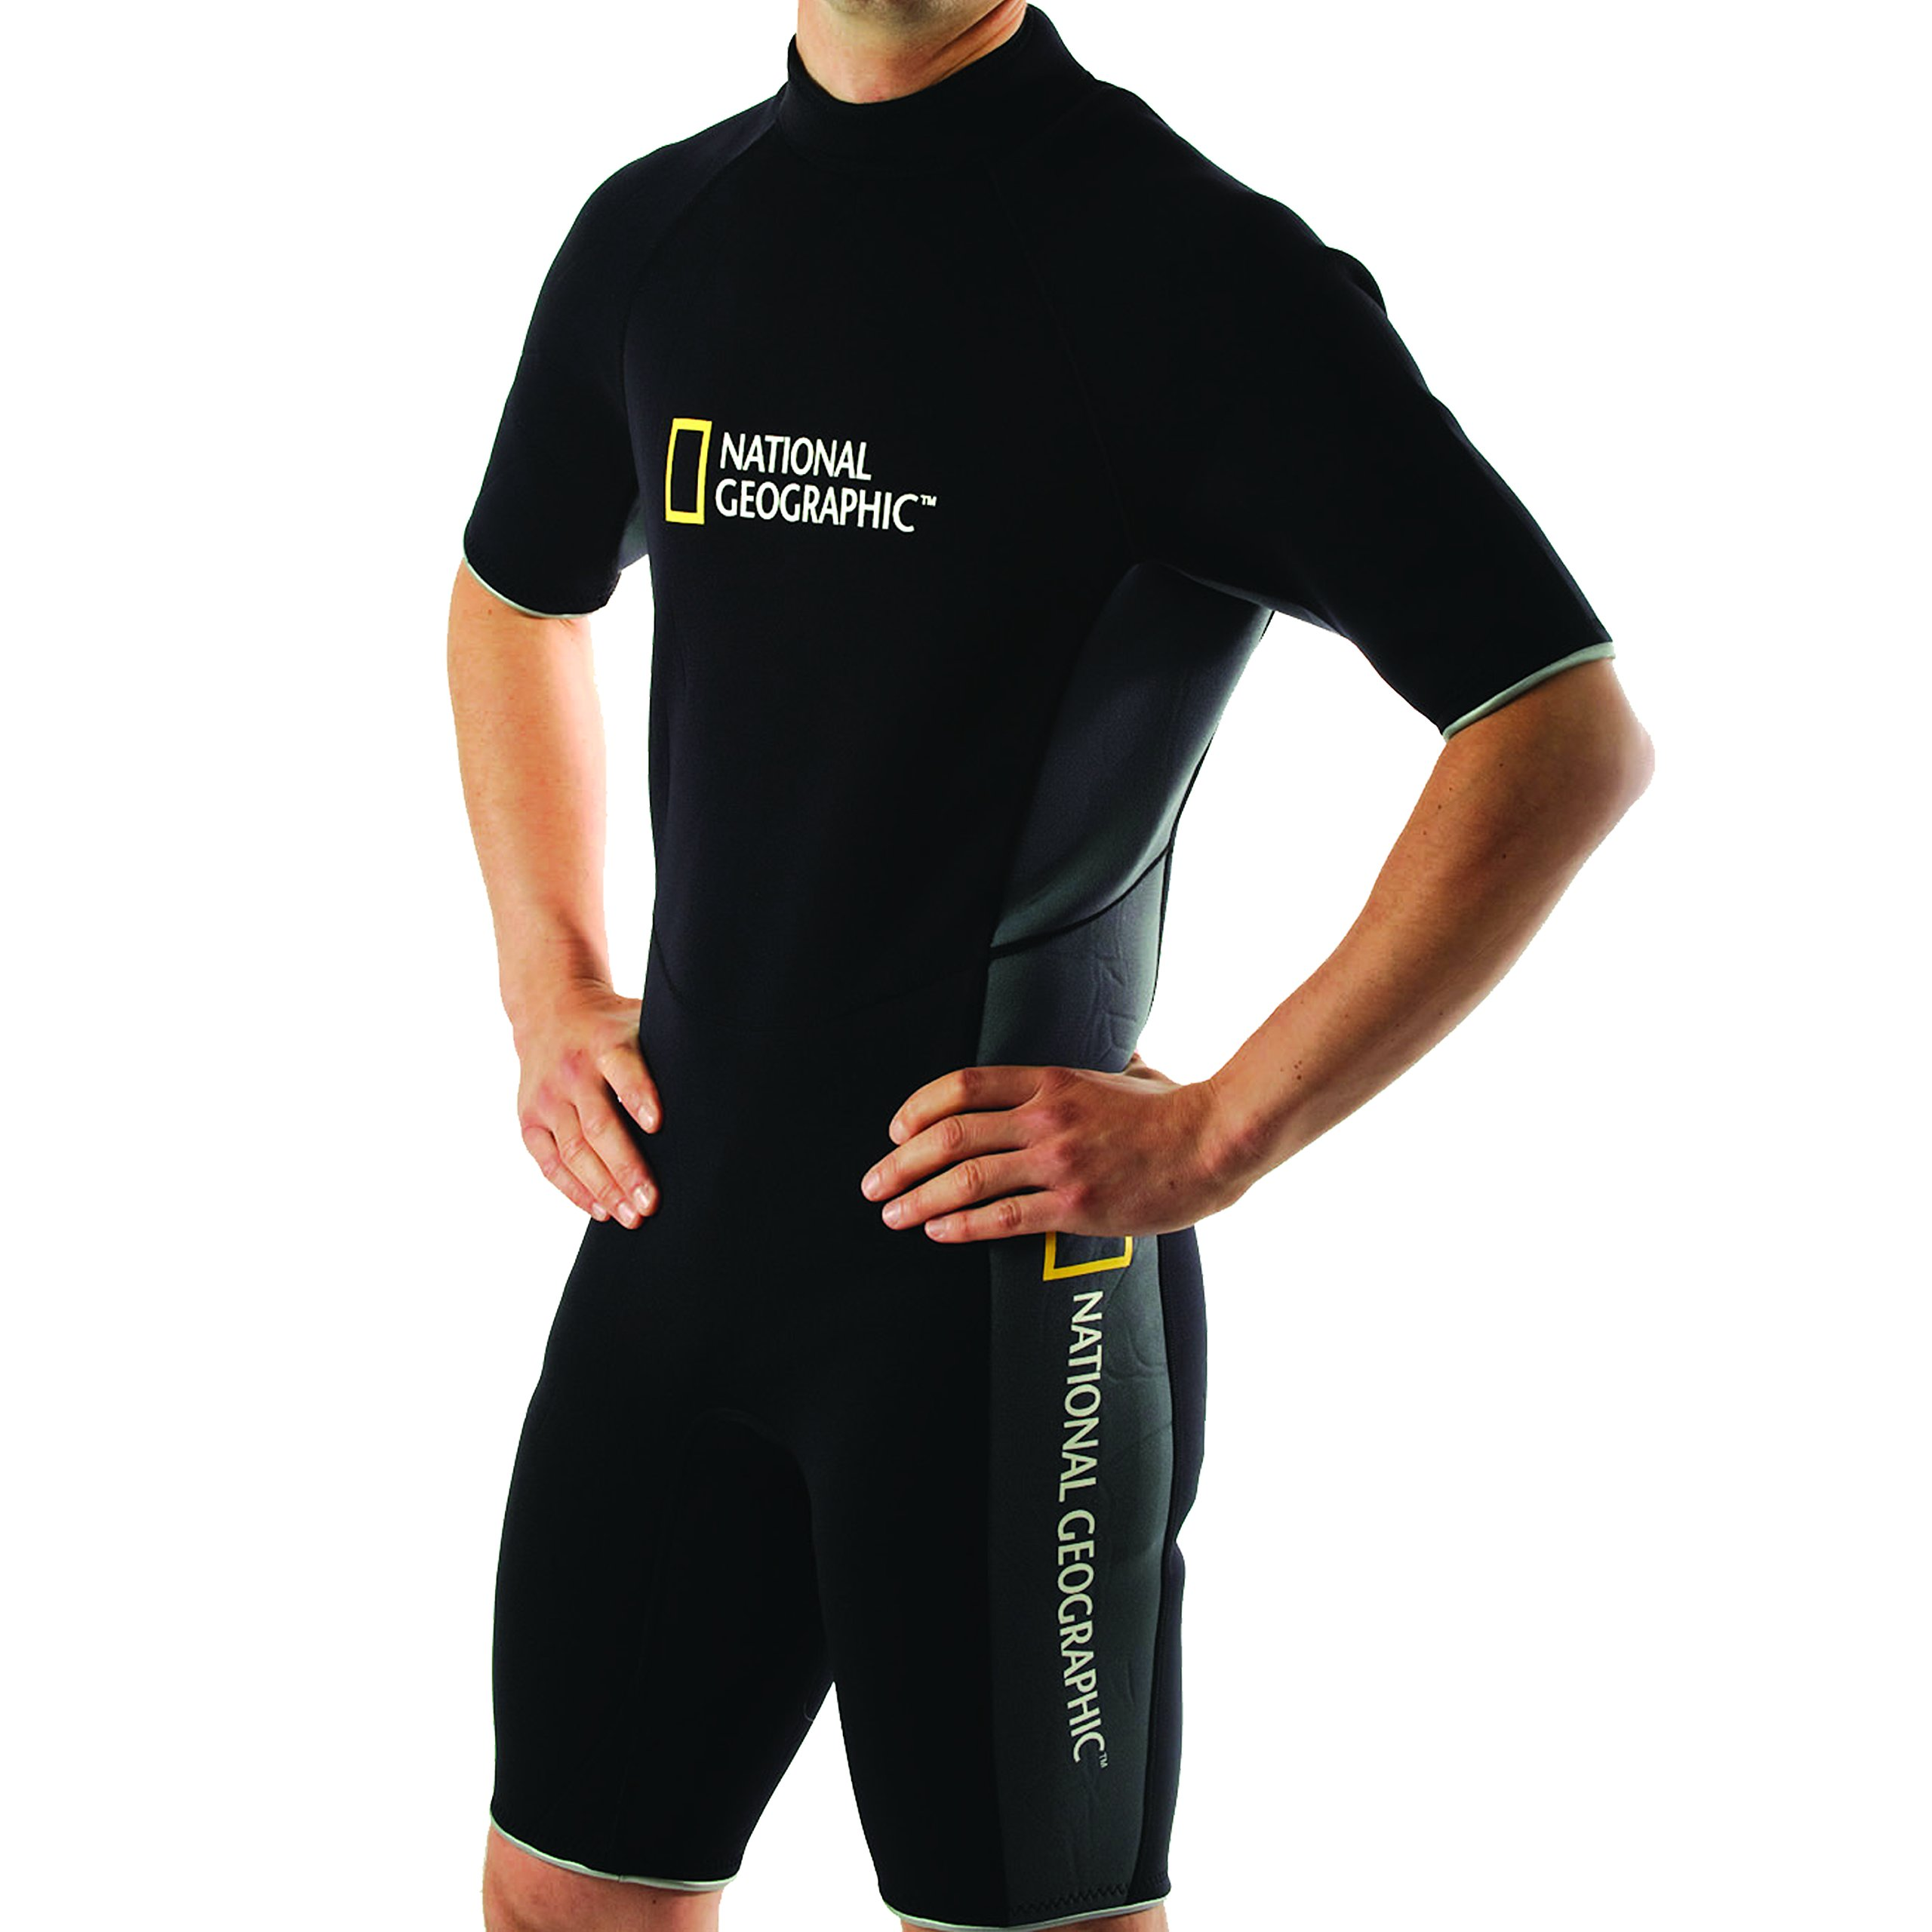 National Geographic Snorkeler Men's Classic Shorty Suit, Medium 5902